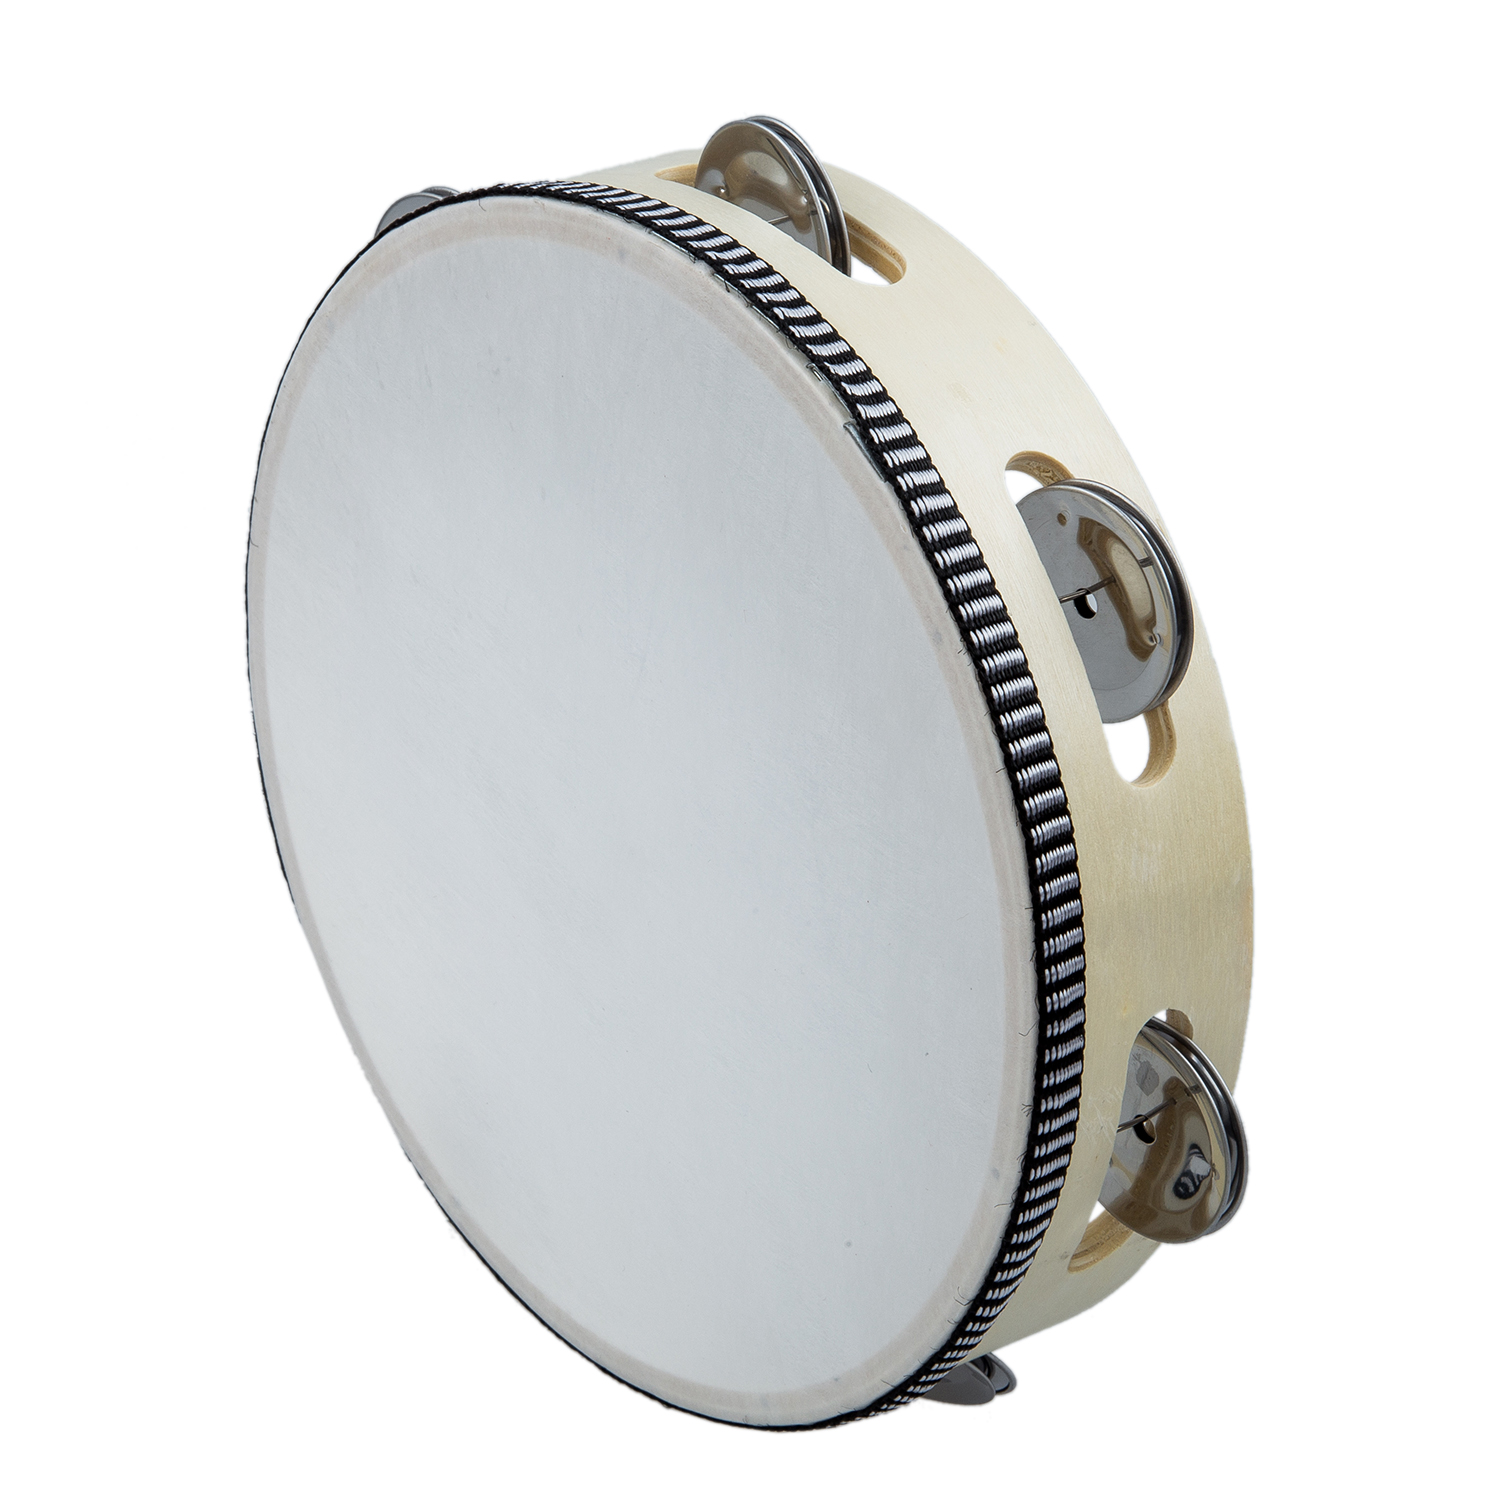 Wholesale 3PCS  8 Musical Tambourine Drum Round Percussion Gift for KTV Party